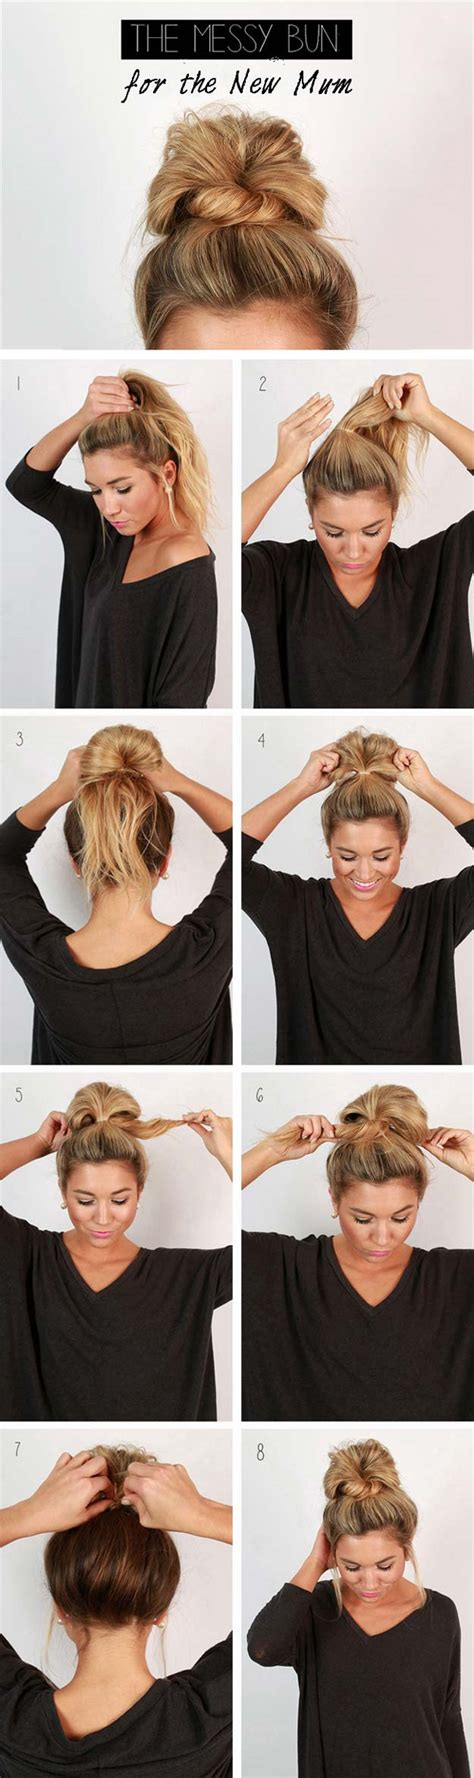 41 diy cool easy hairstyles that real can actually